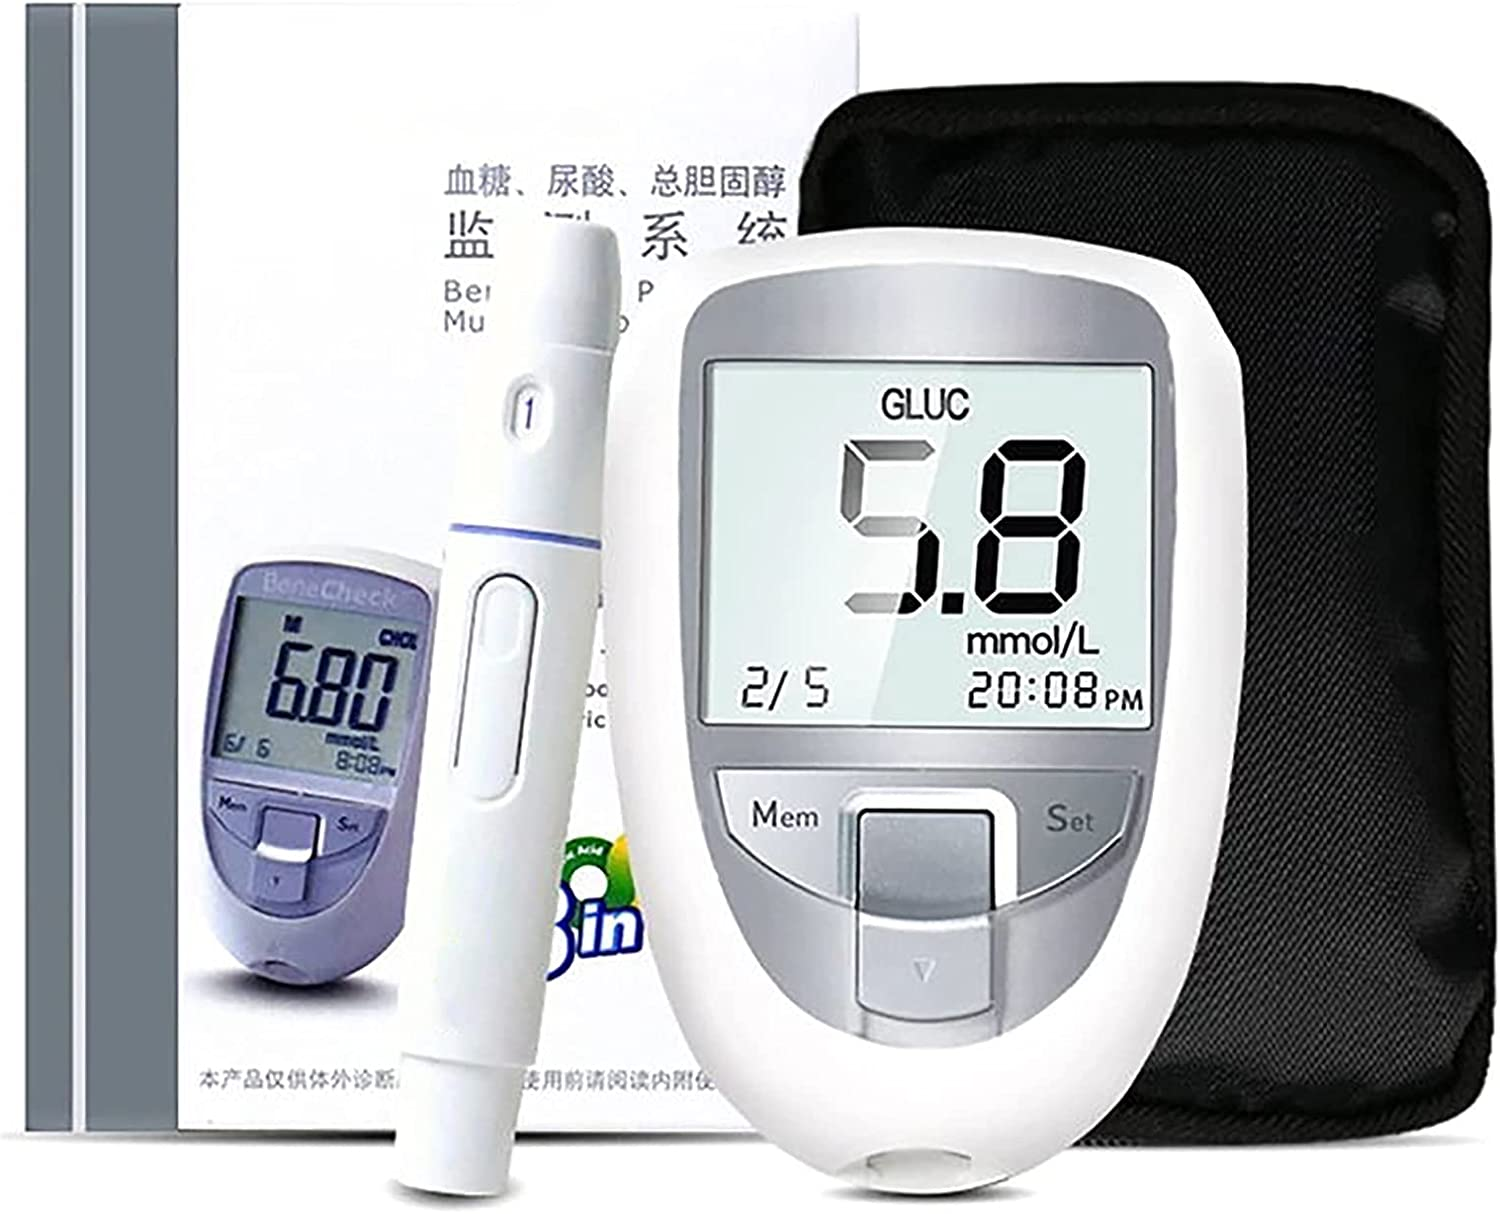 HTTDD 3 in 1 Blood lowest price Glucose Meter Tes Portable New Award-winning store LED Home